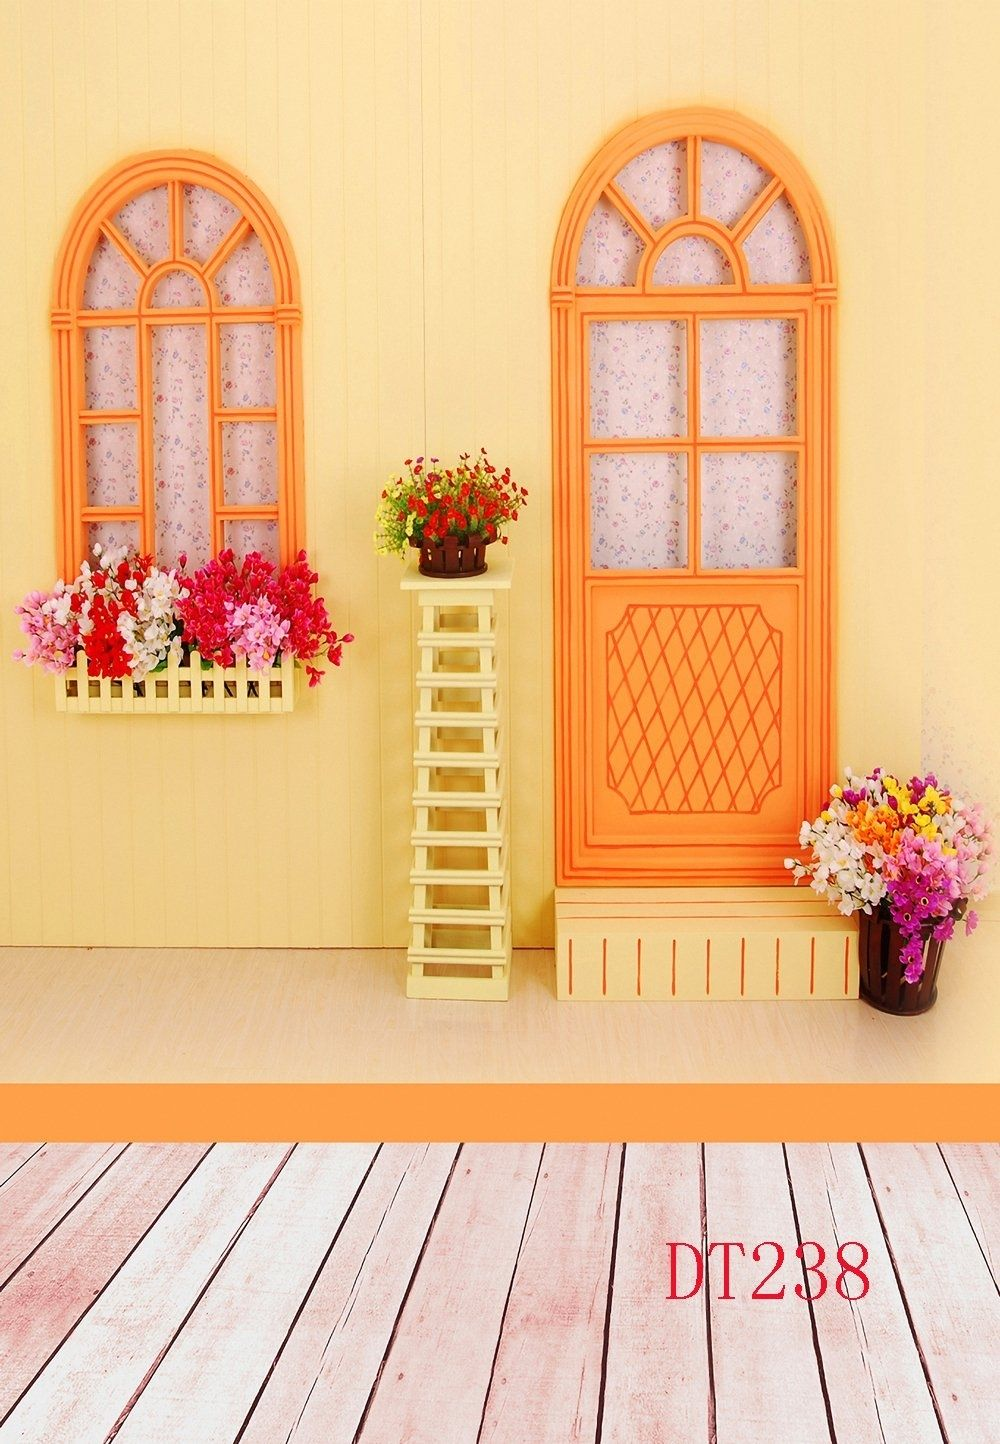 5x7ft Wooden Floor Window Flowers Photography Background Computer-Printed Vinyl Backdrops